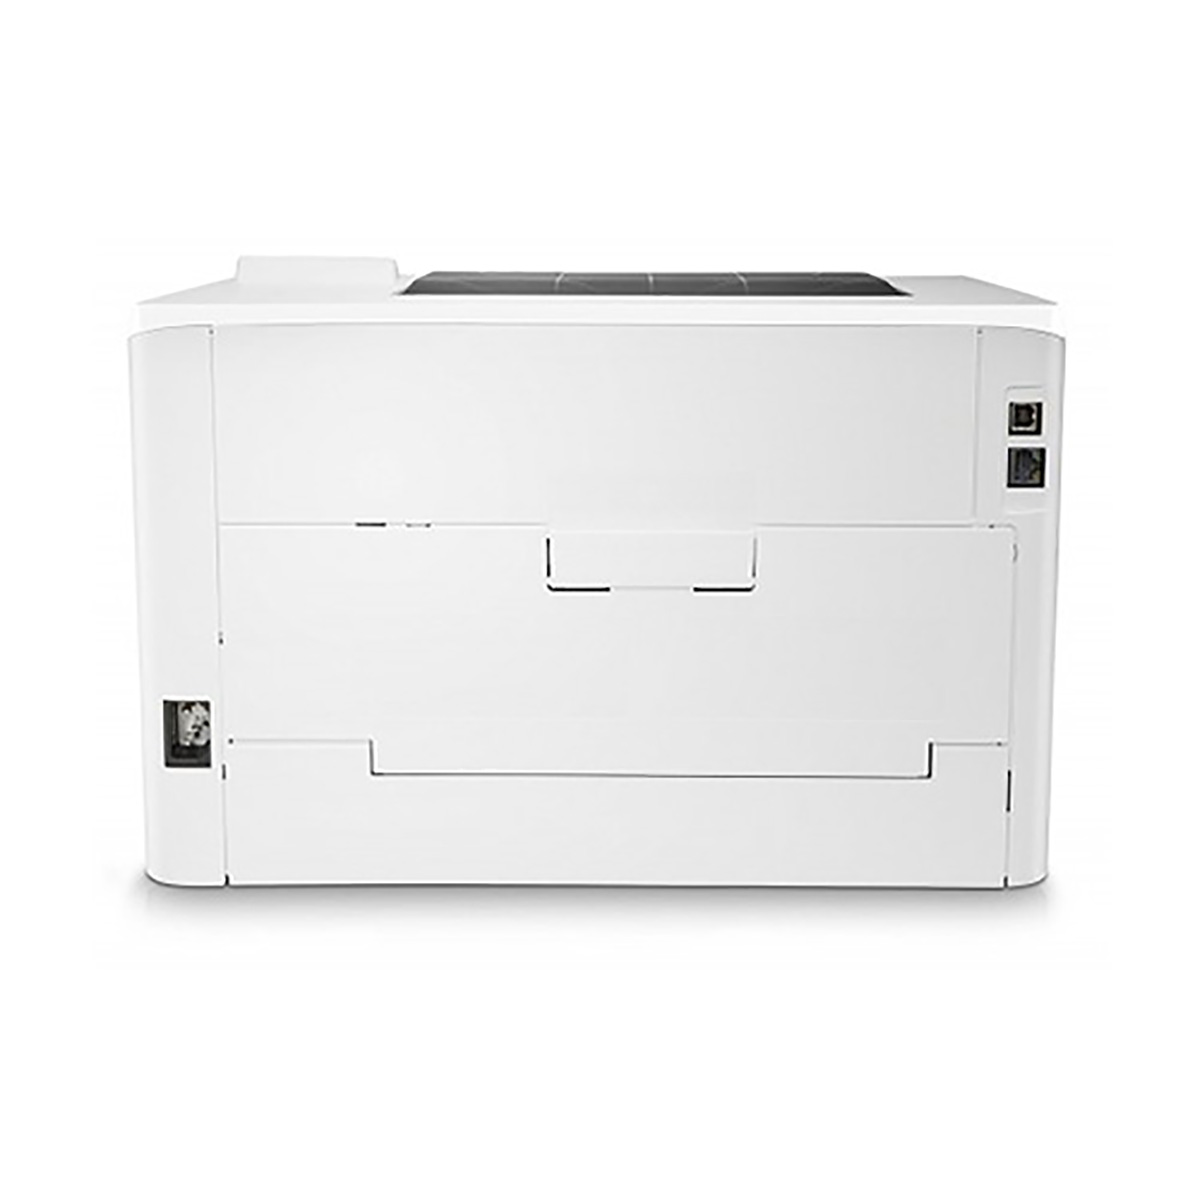 HP Pro M255nw Single Function Color Laser Printer